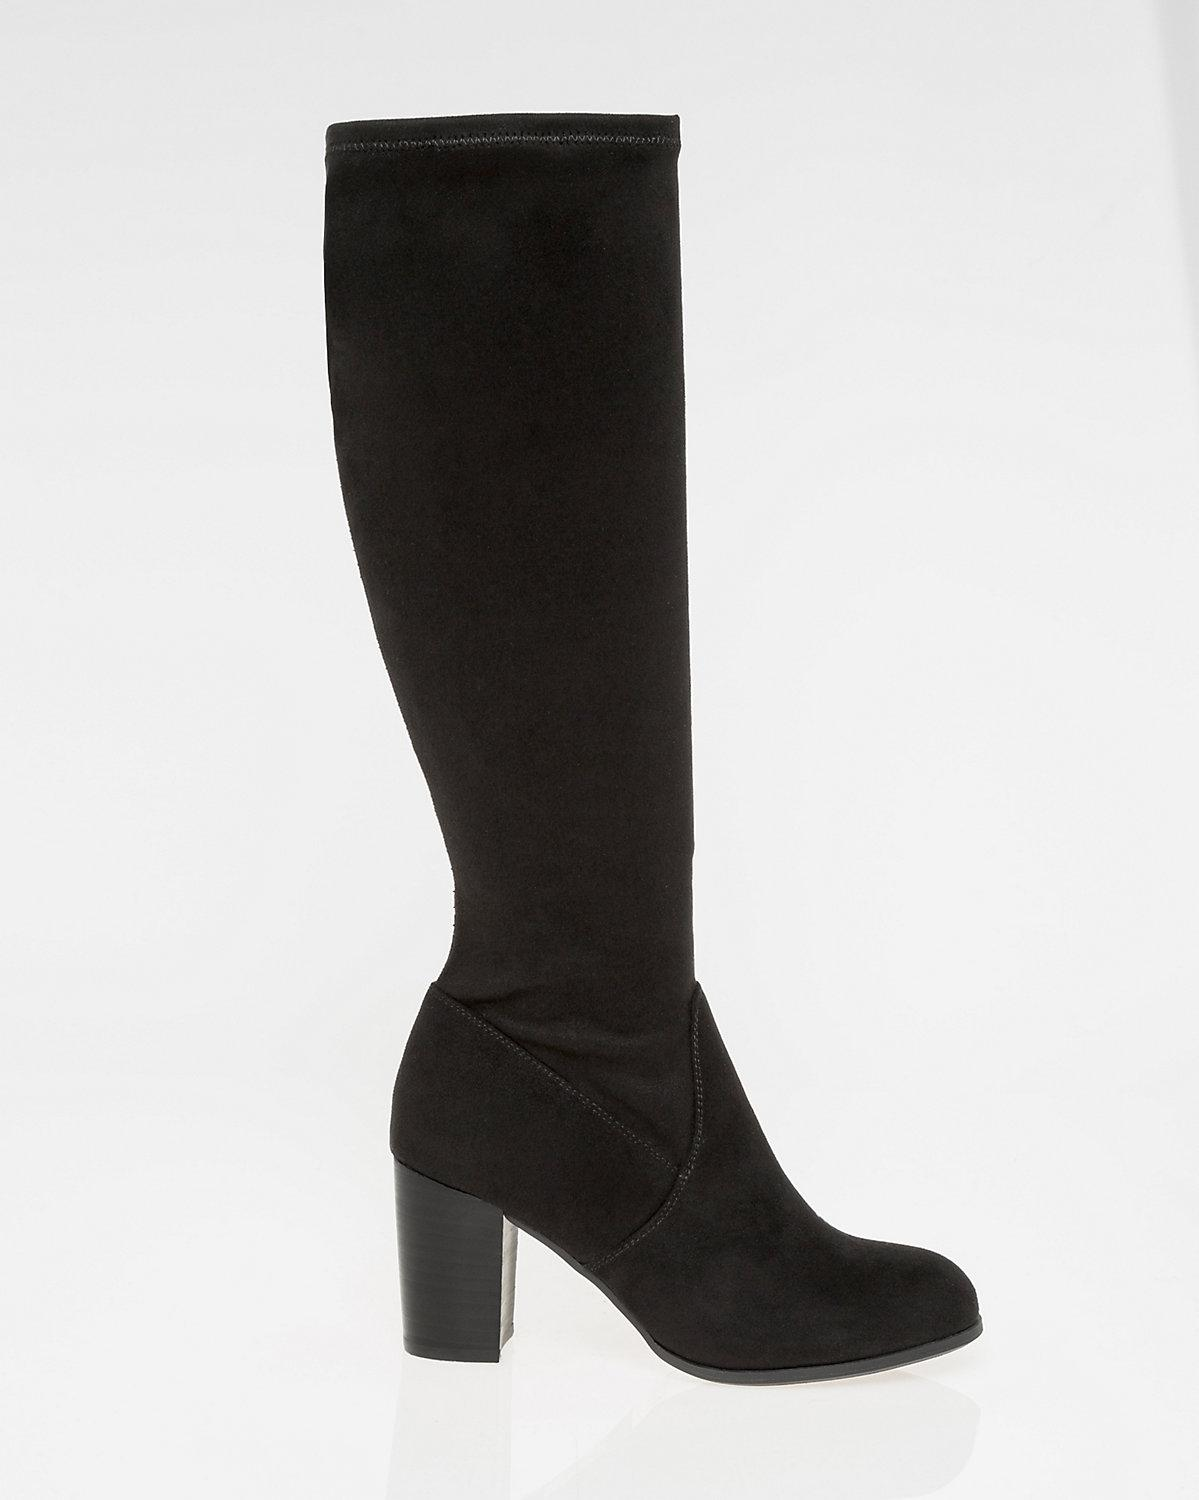 f012cdfb729 Le Chateau Stretch Suede-like Knee-high Boot in Black - Lyst